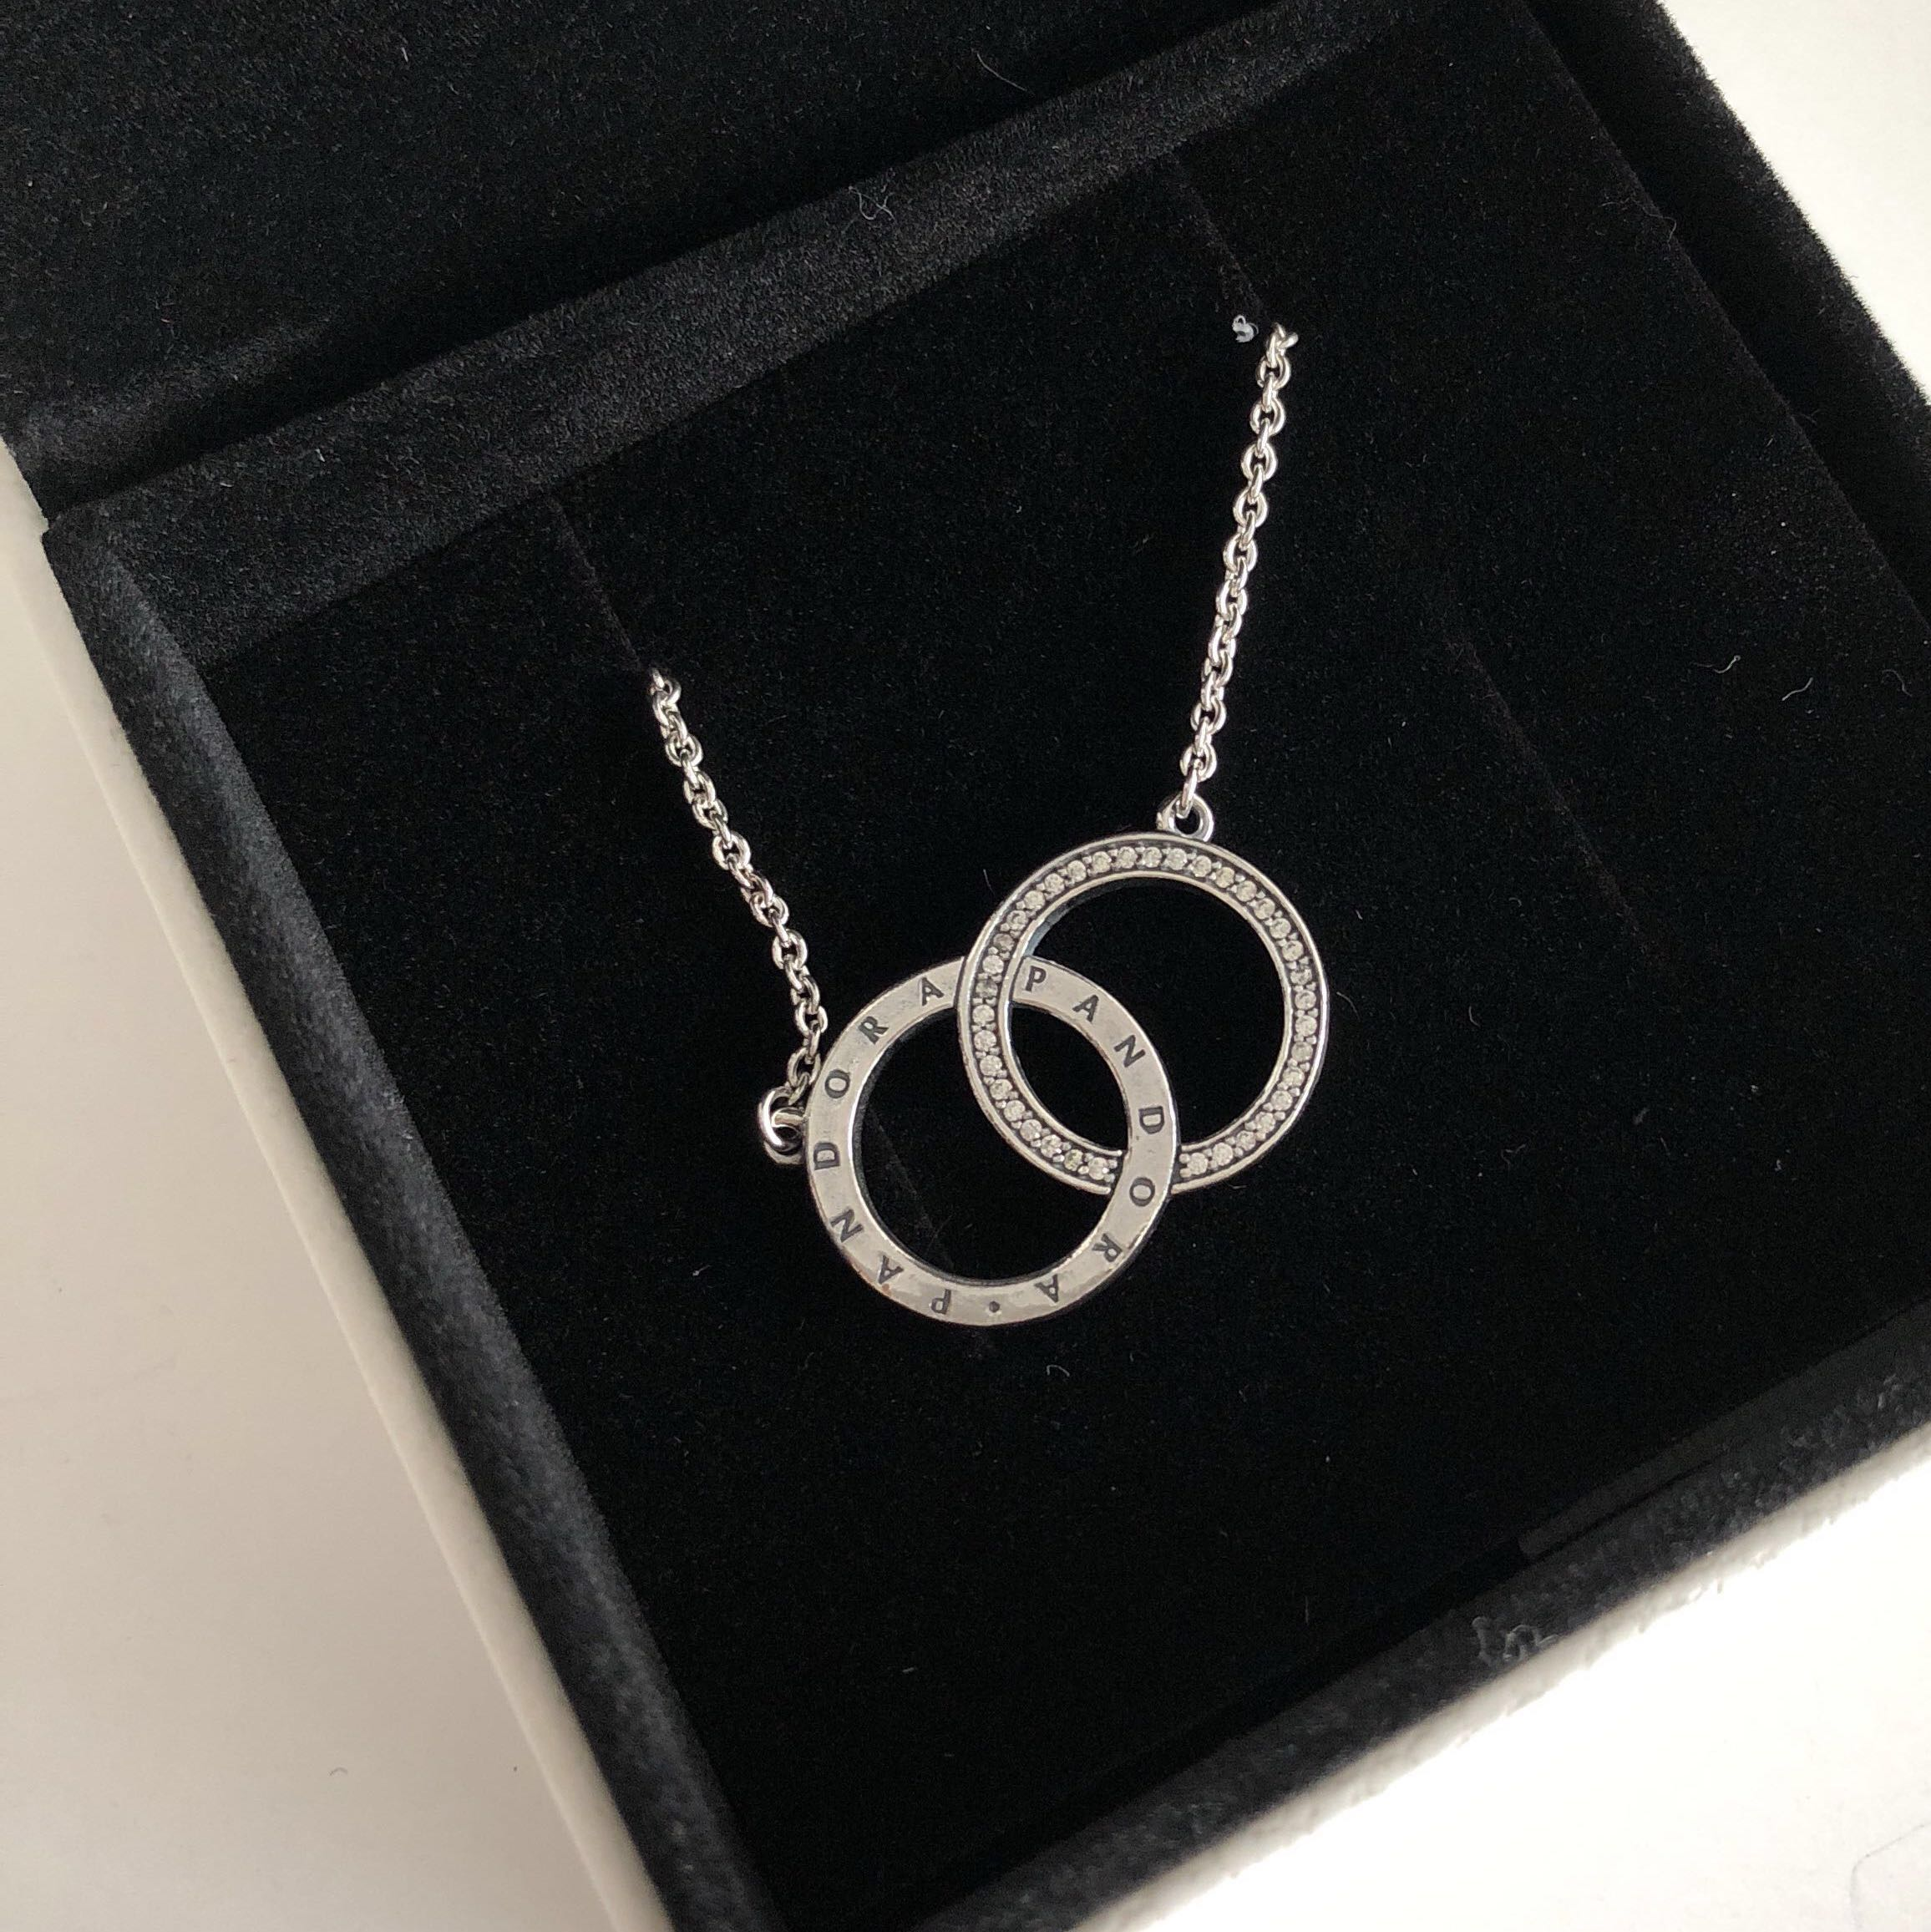 d90b0f38e7003 PANDORA Circles Necklace, Luxury, Accessories on Carousell